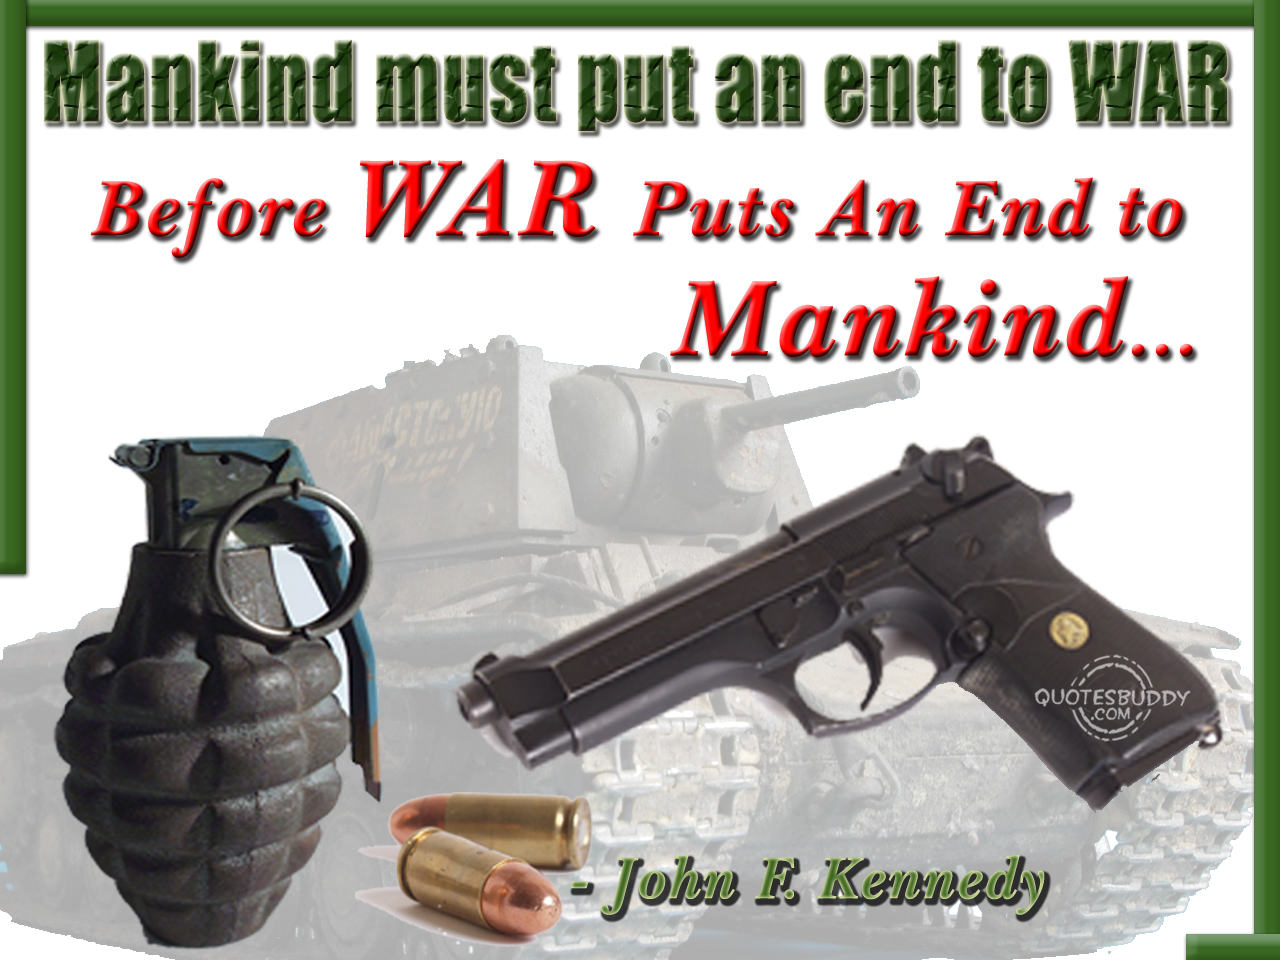 Mankind Must Put And End To War Before War Puts An End To Mankind